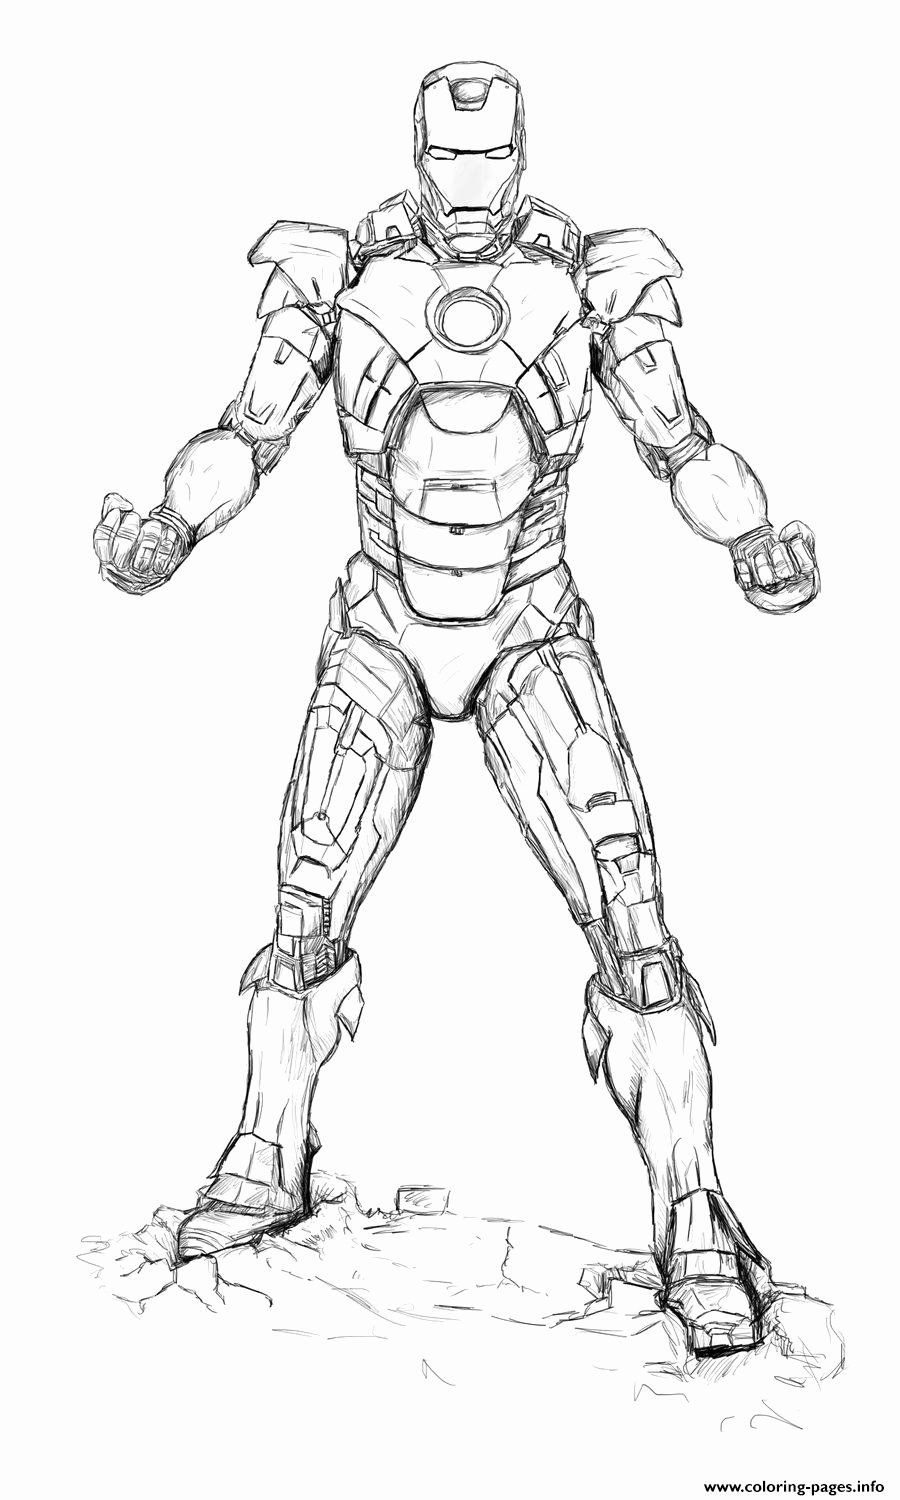 Avengers Iron Man Coloring Page From Marvel S The Avengers Category Select From 30710 Printable Cra Marvel Coloring Avengers Coloring Superhero Coloring Pages